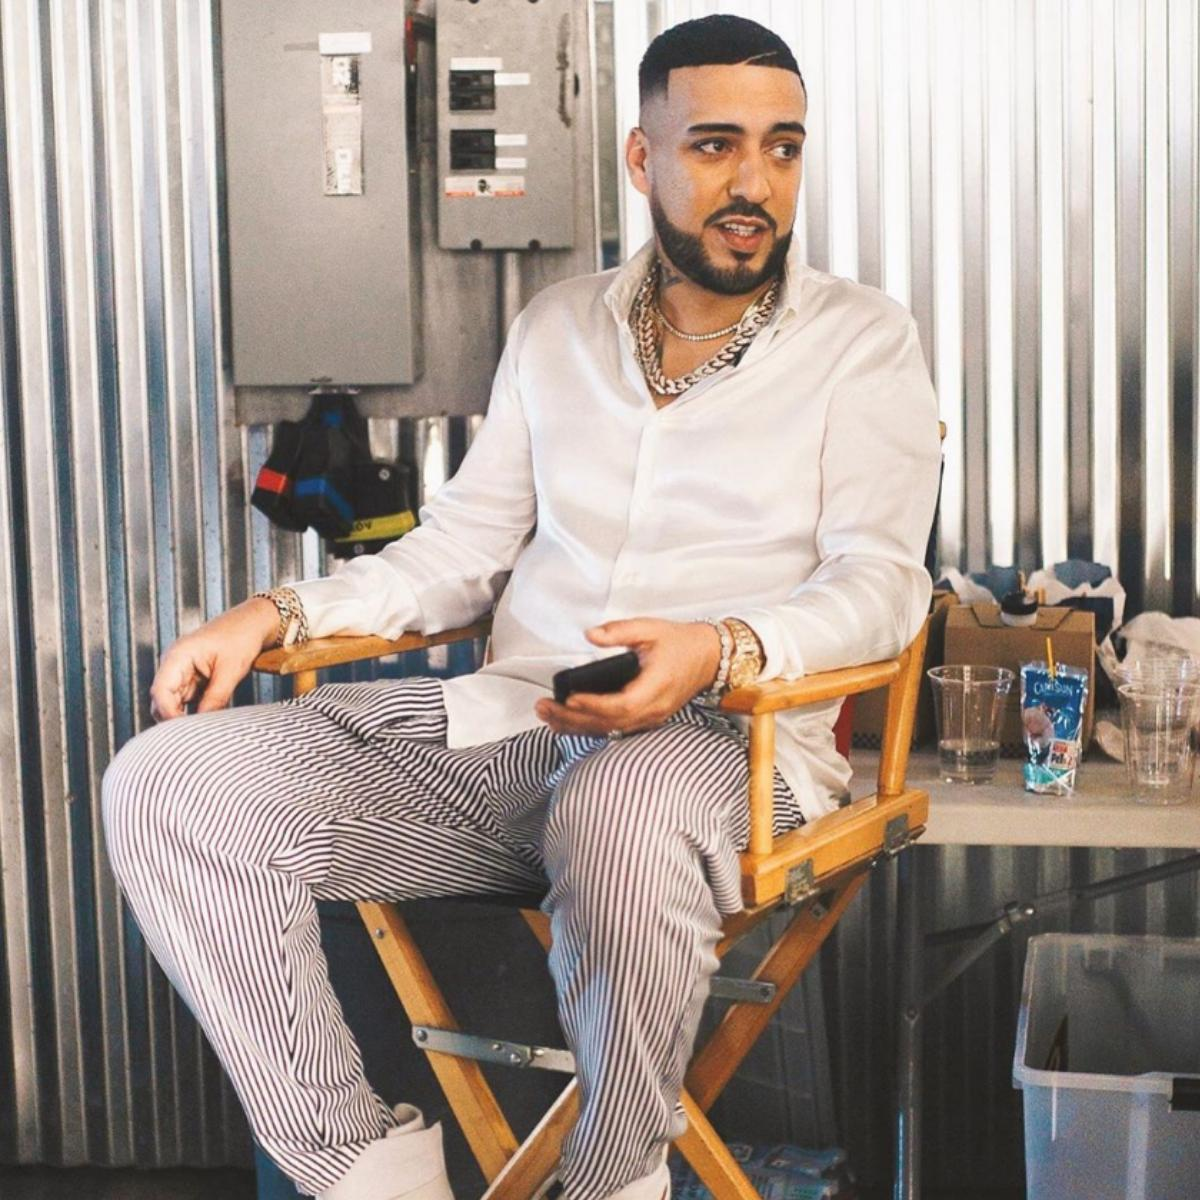 French Montana Son Could Lead The U.S. Better Than Trump